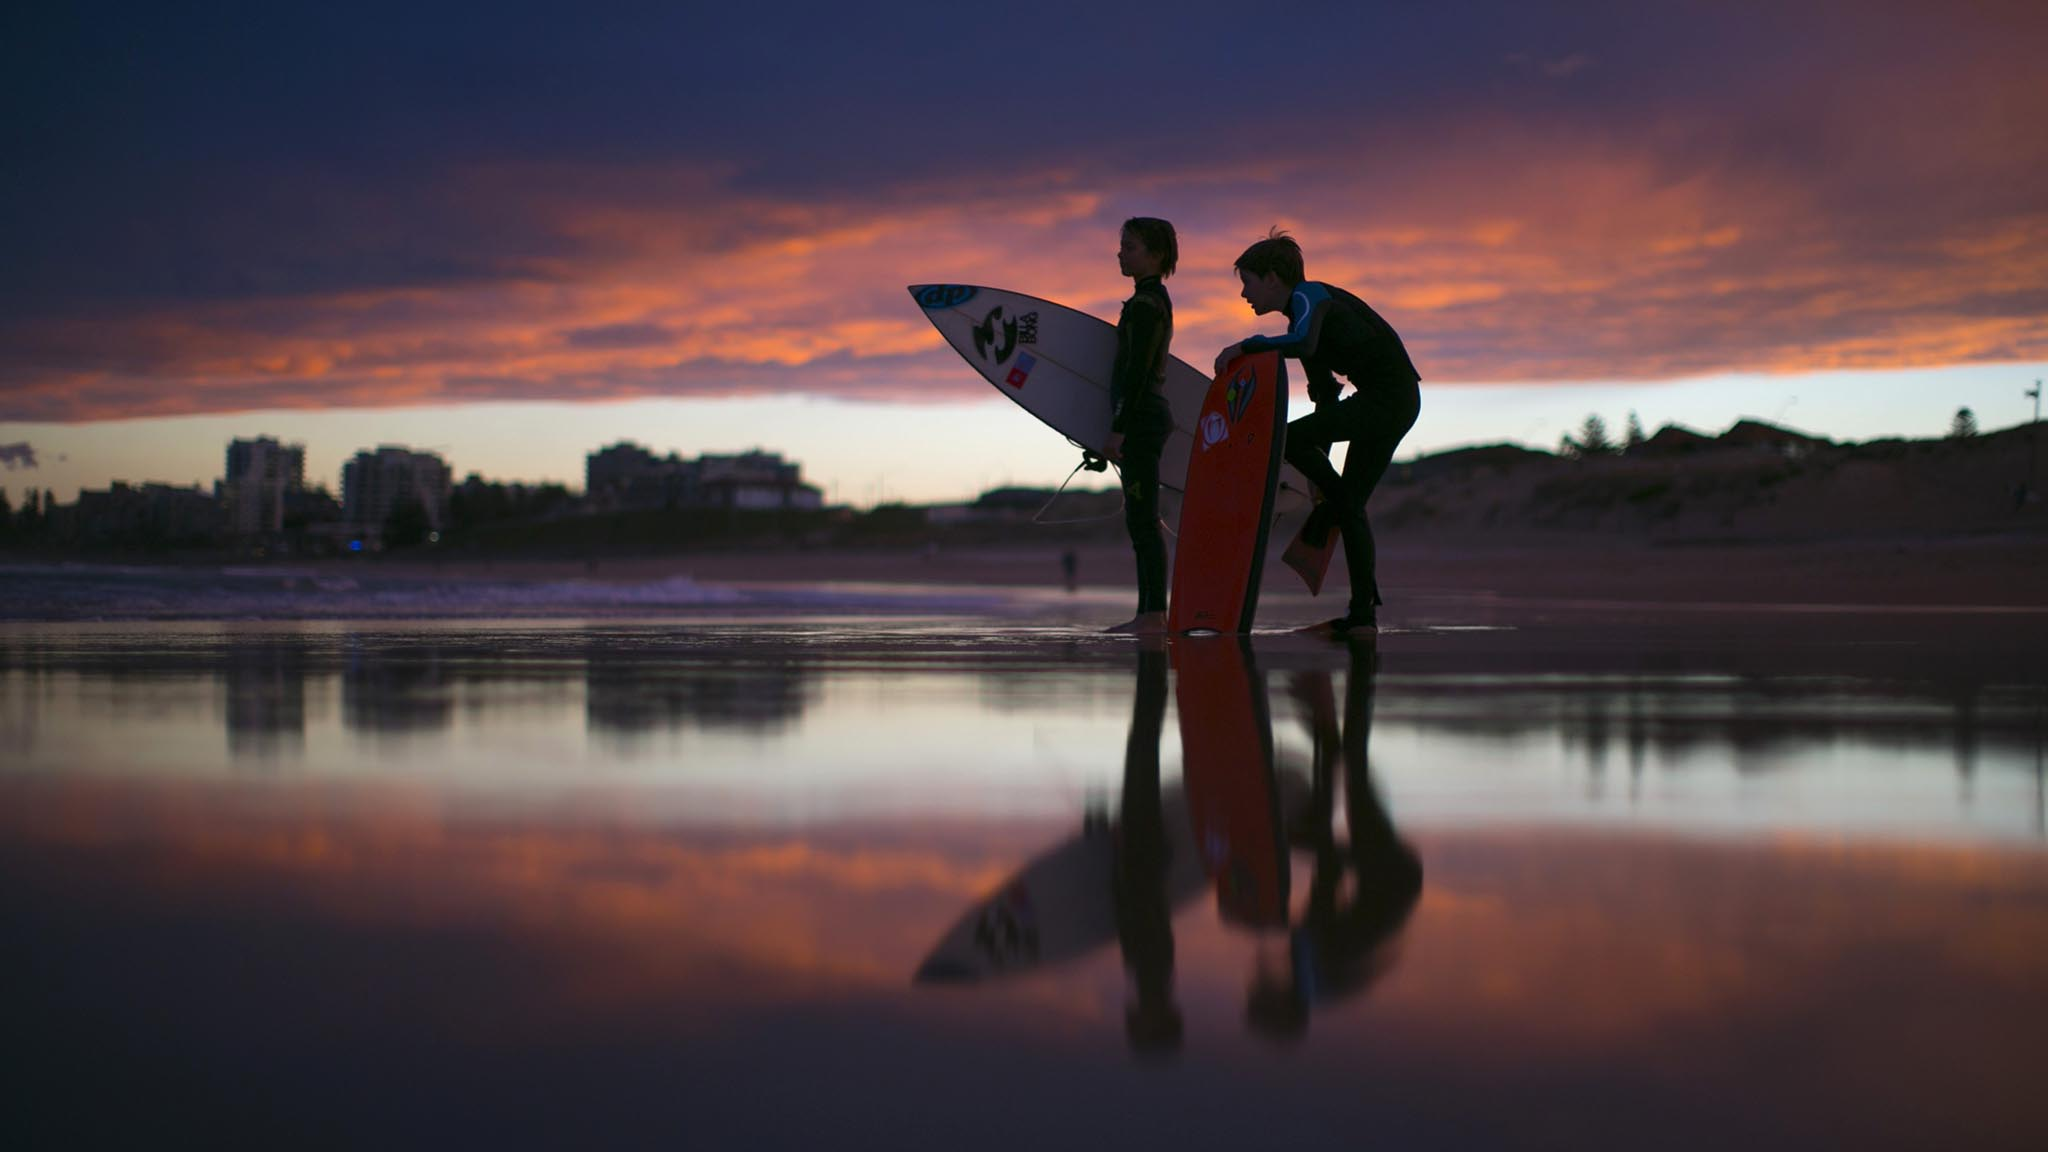 Young surfers, nicknamed 'grommets' in local surfing parlance, wait for their friends to finish a post-sunset session on the waves off Wanda Beach in Sydney